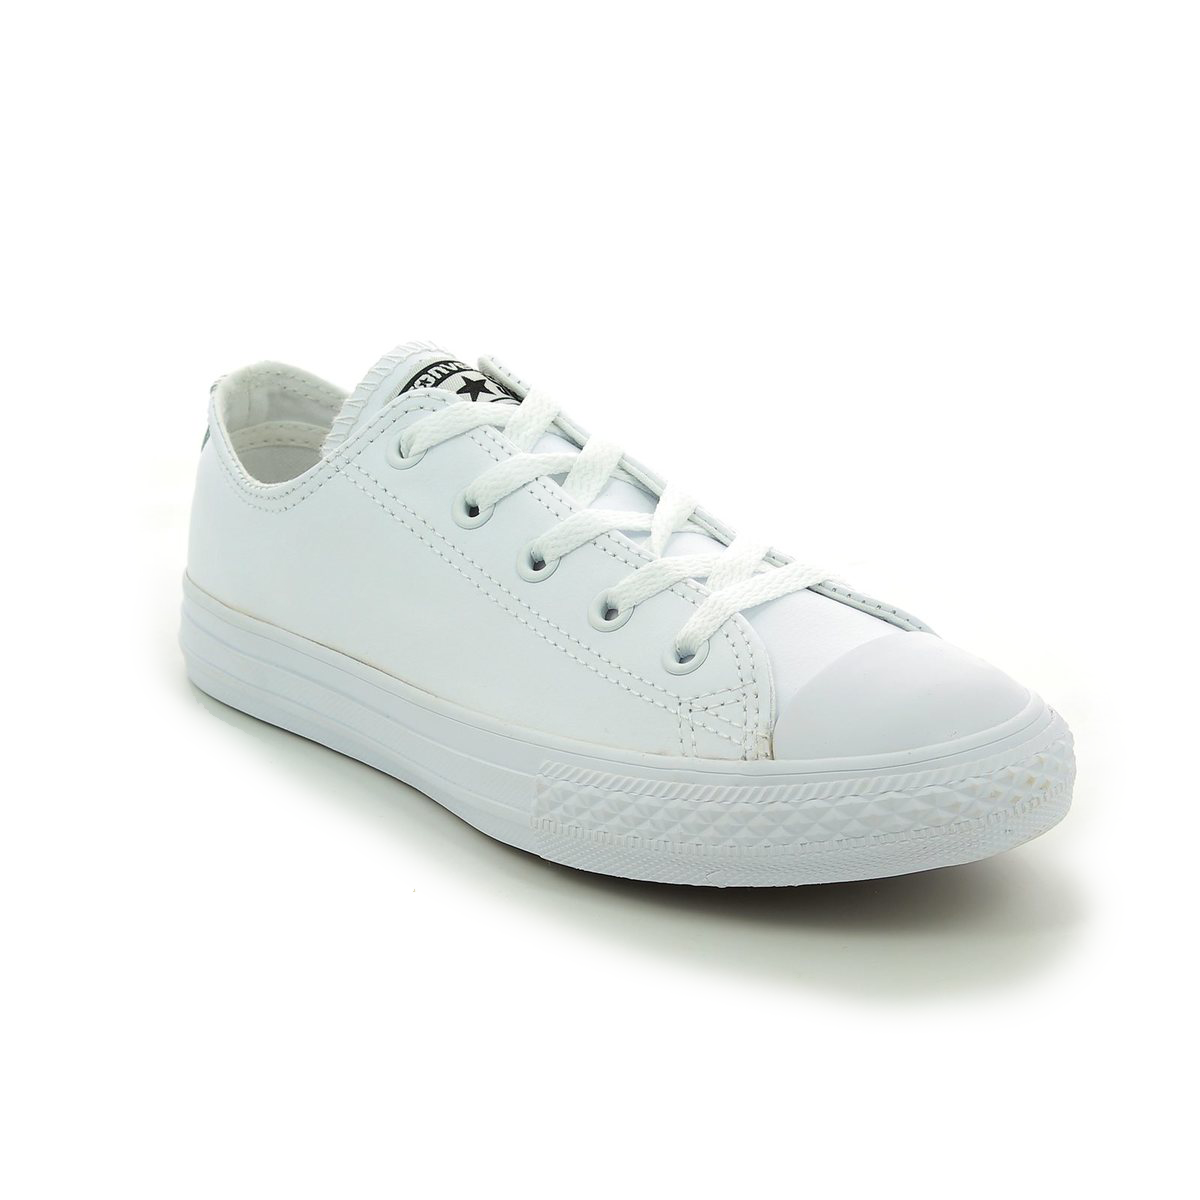 9e52c0ce71b6 Converse Trainers - White - 335891C Chuck Taylor All Star OX Mono Leather